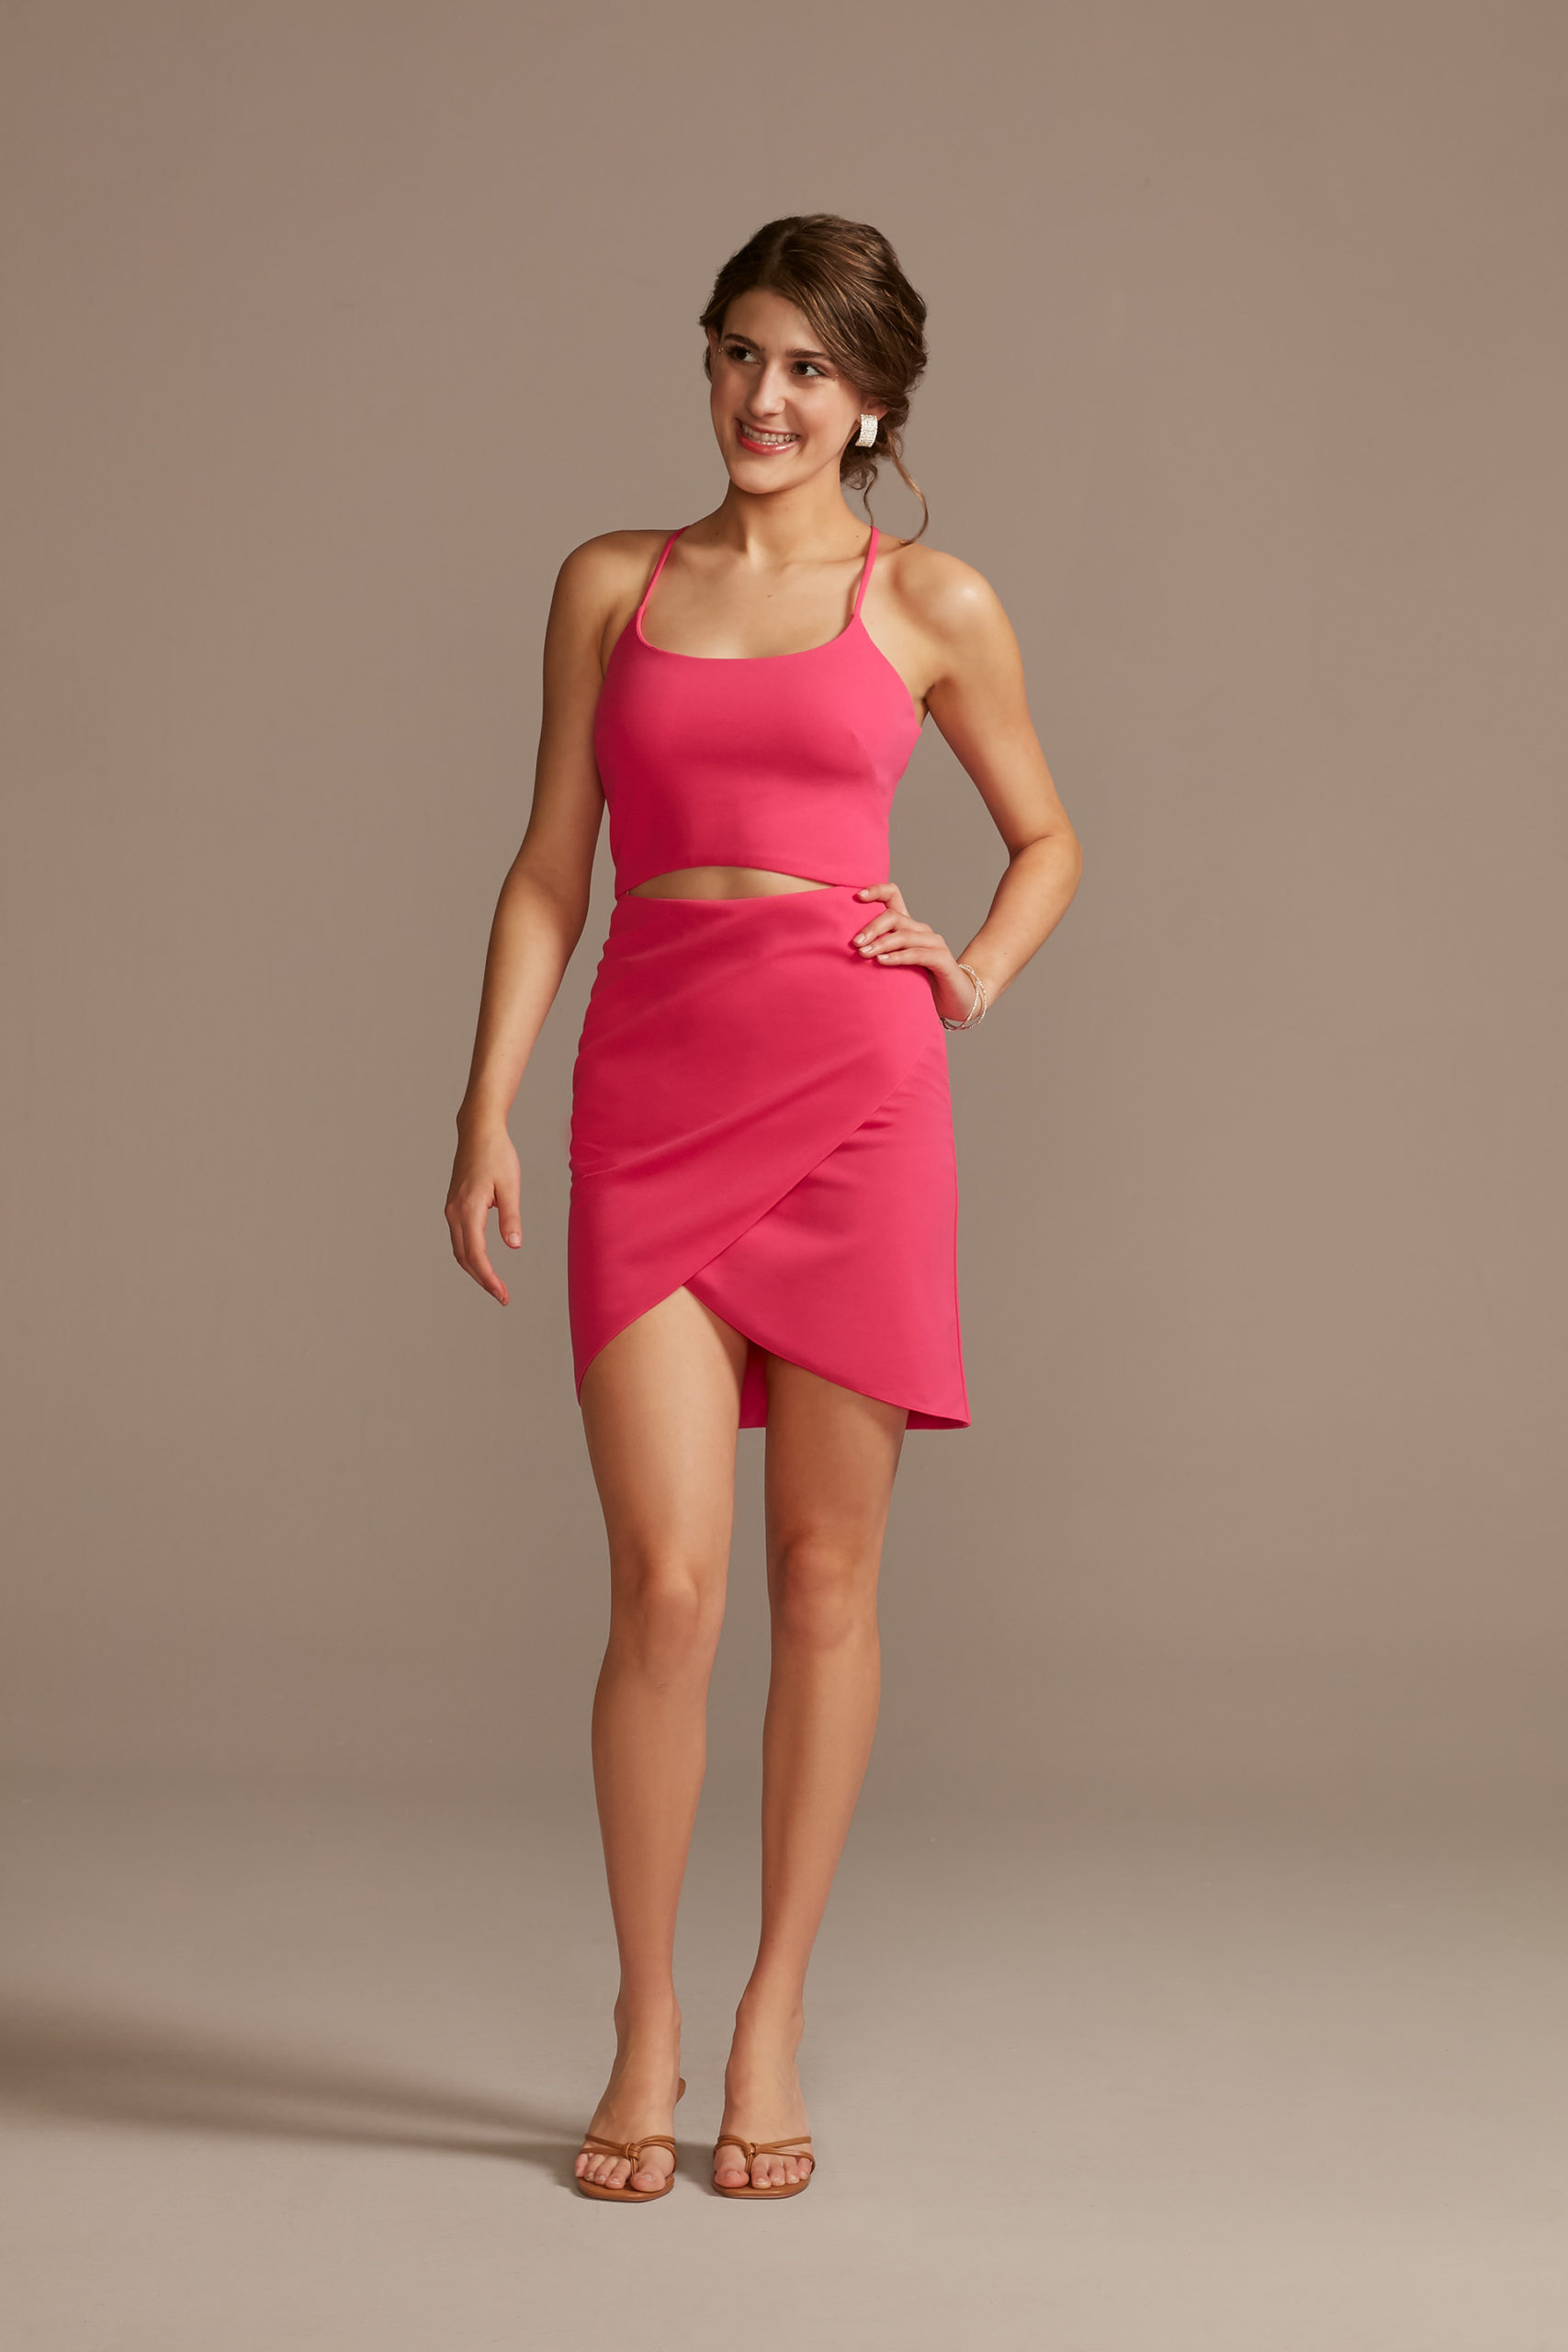 teen girl wearing hot pink mini dress with stomach cutout as a homecoming dress ideas